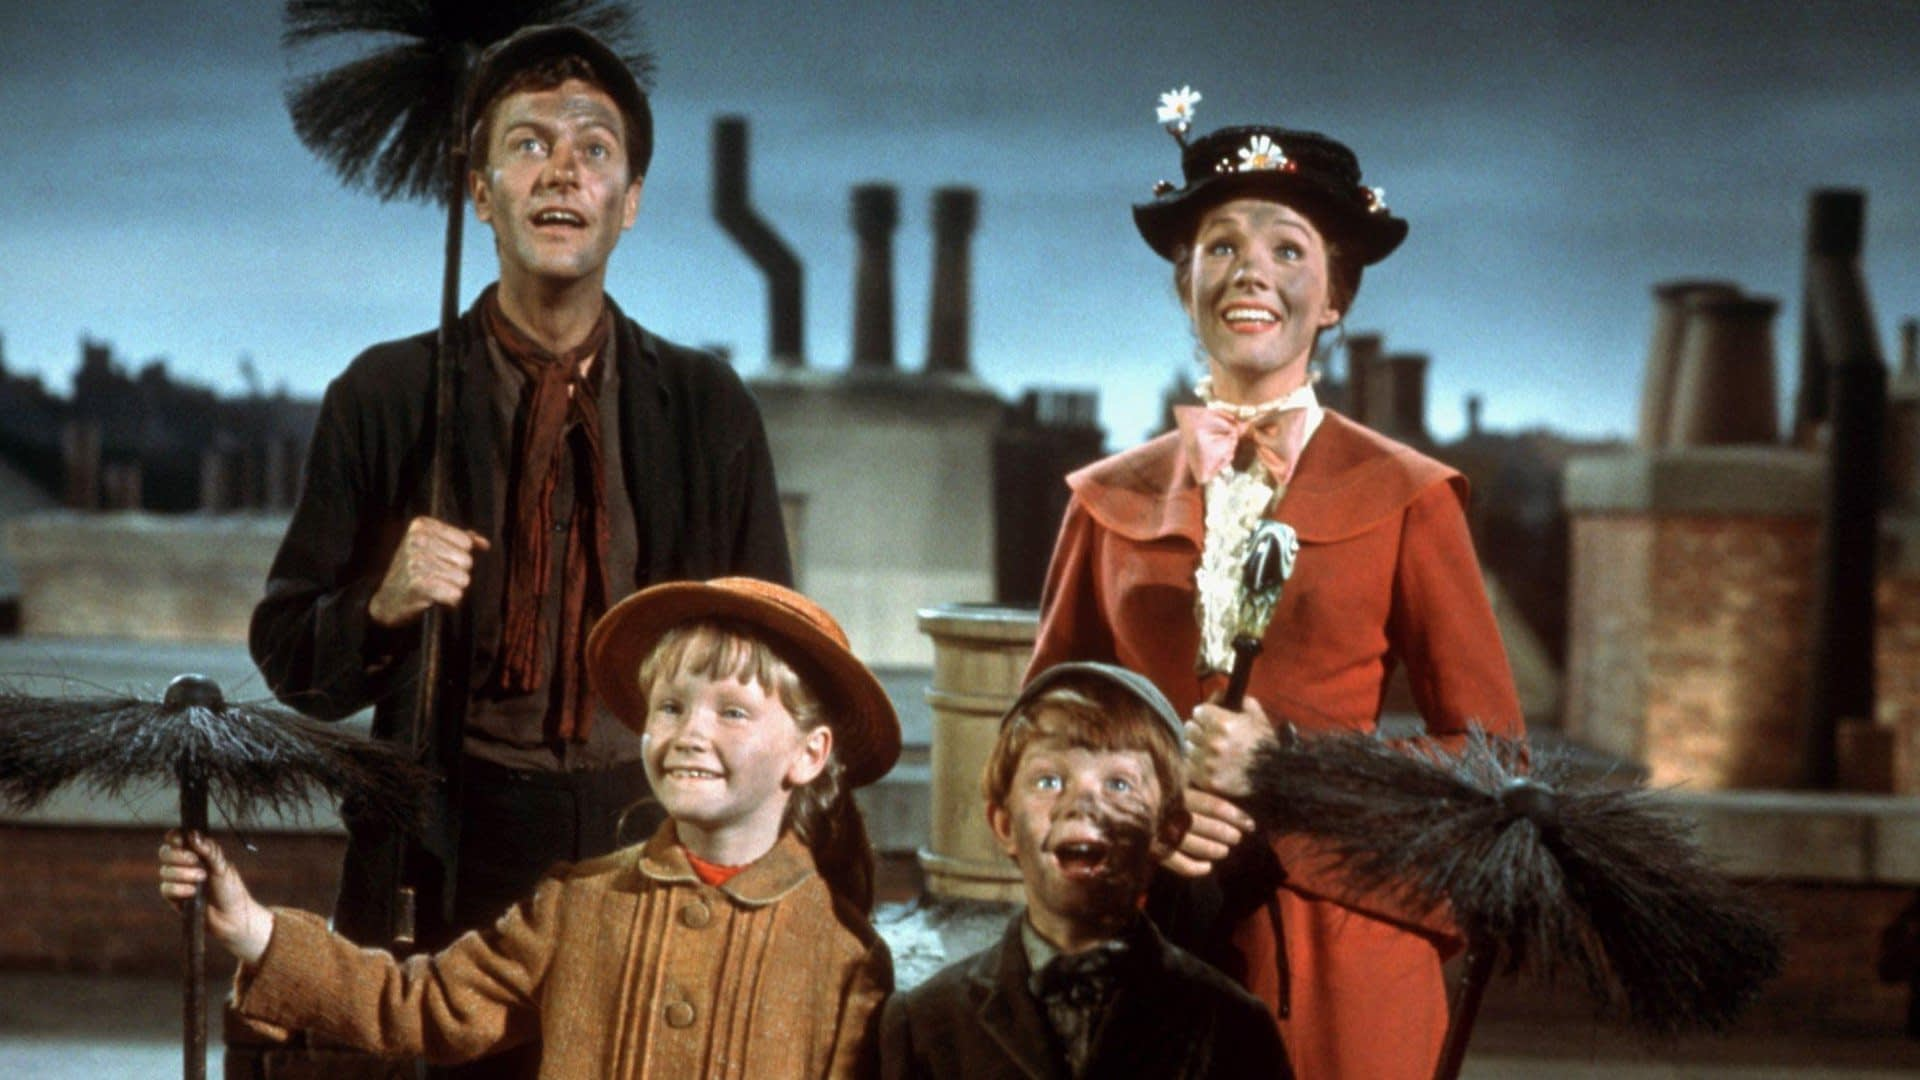 All Time Best Adult Movies mary poppins' is the greatest movie musical of all time and